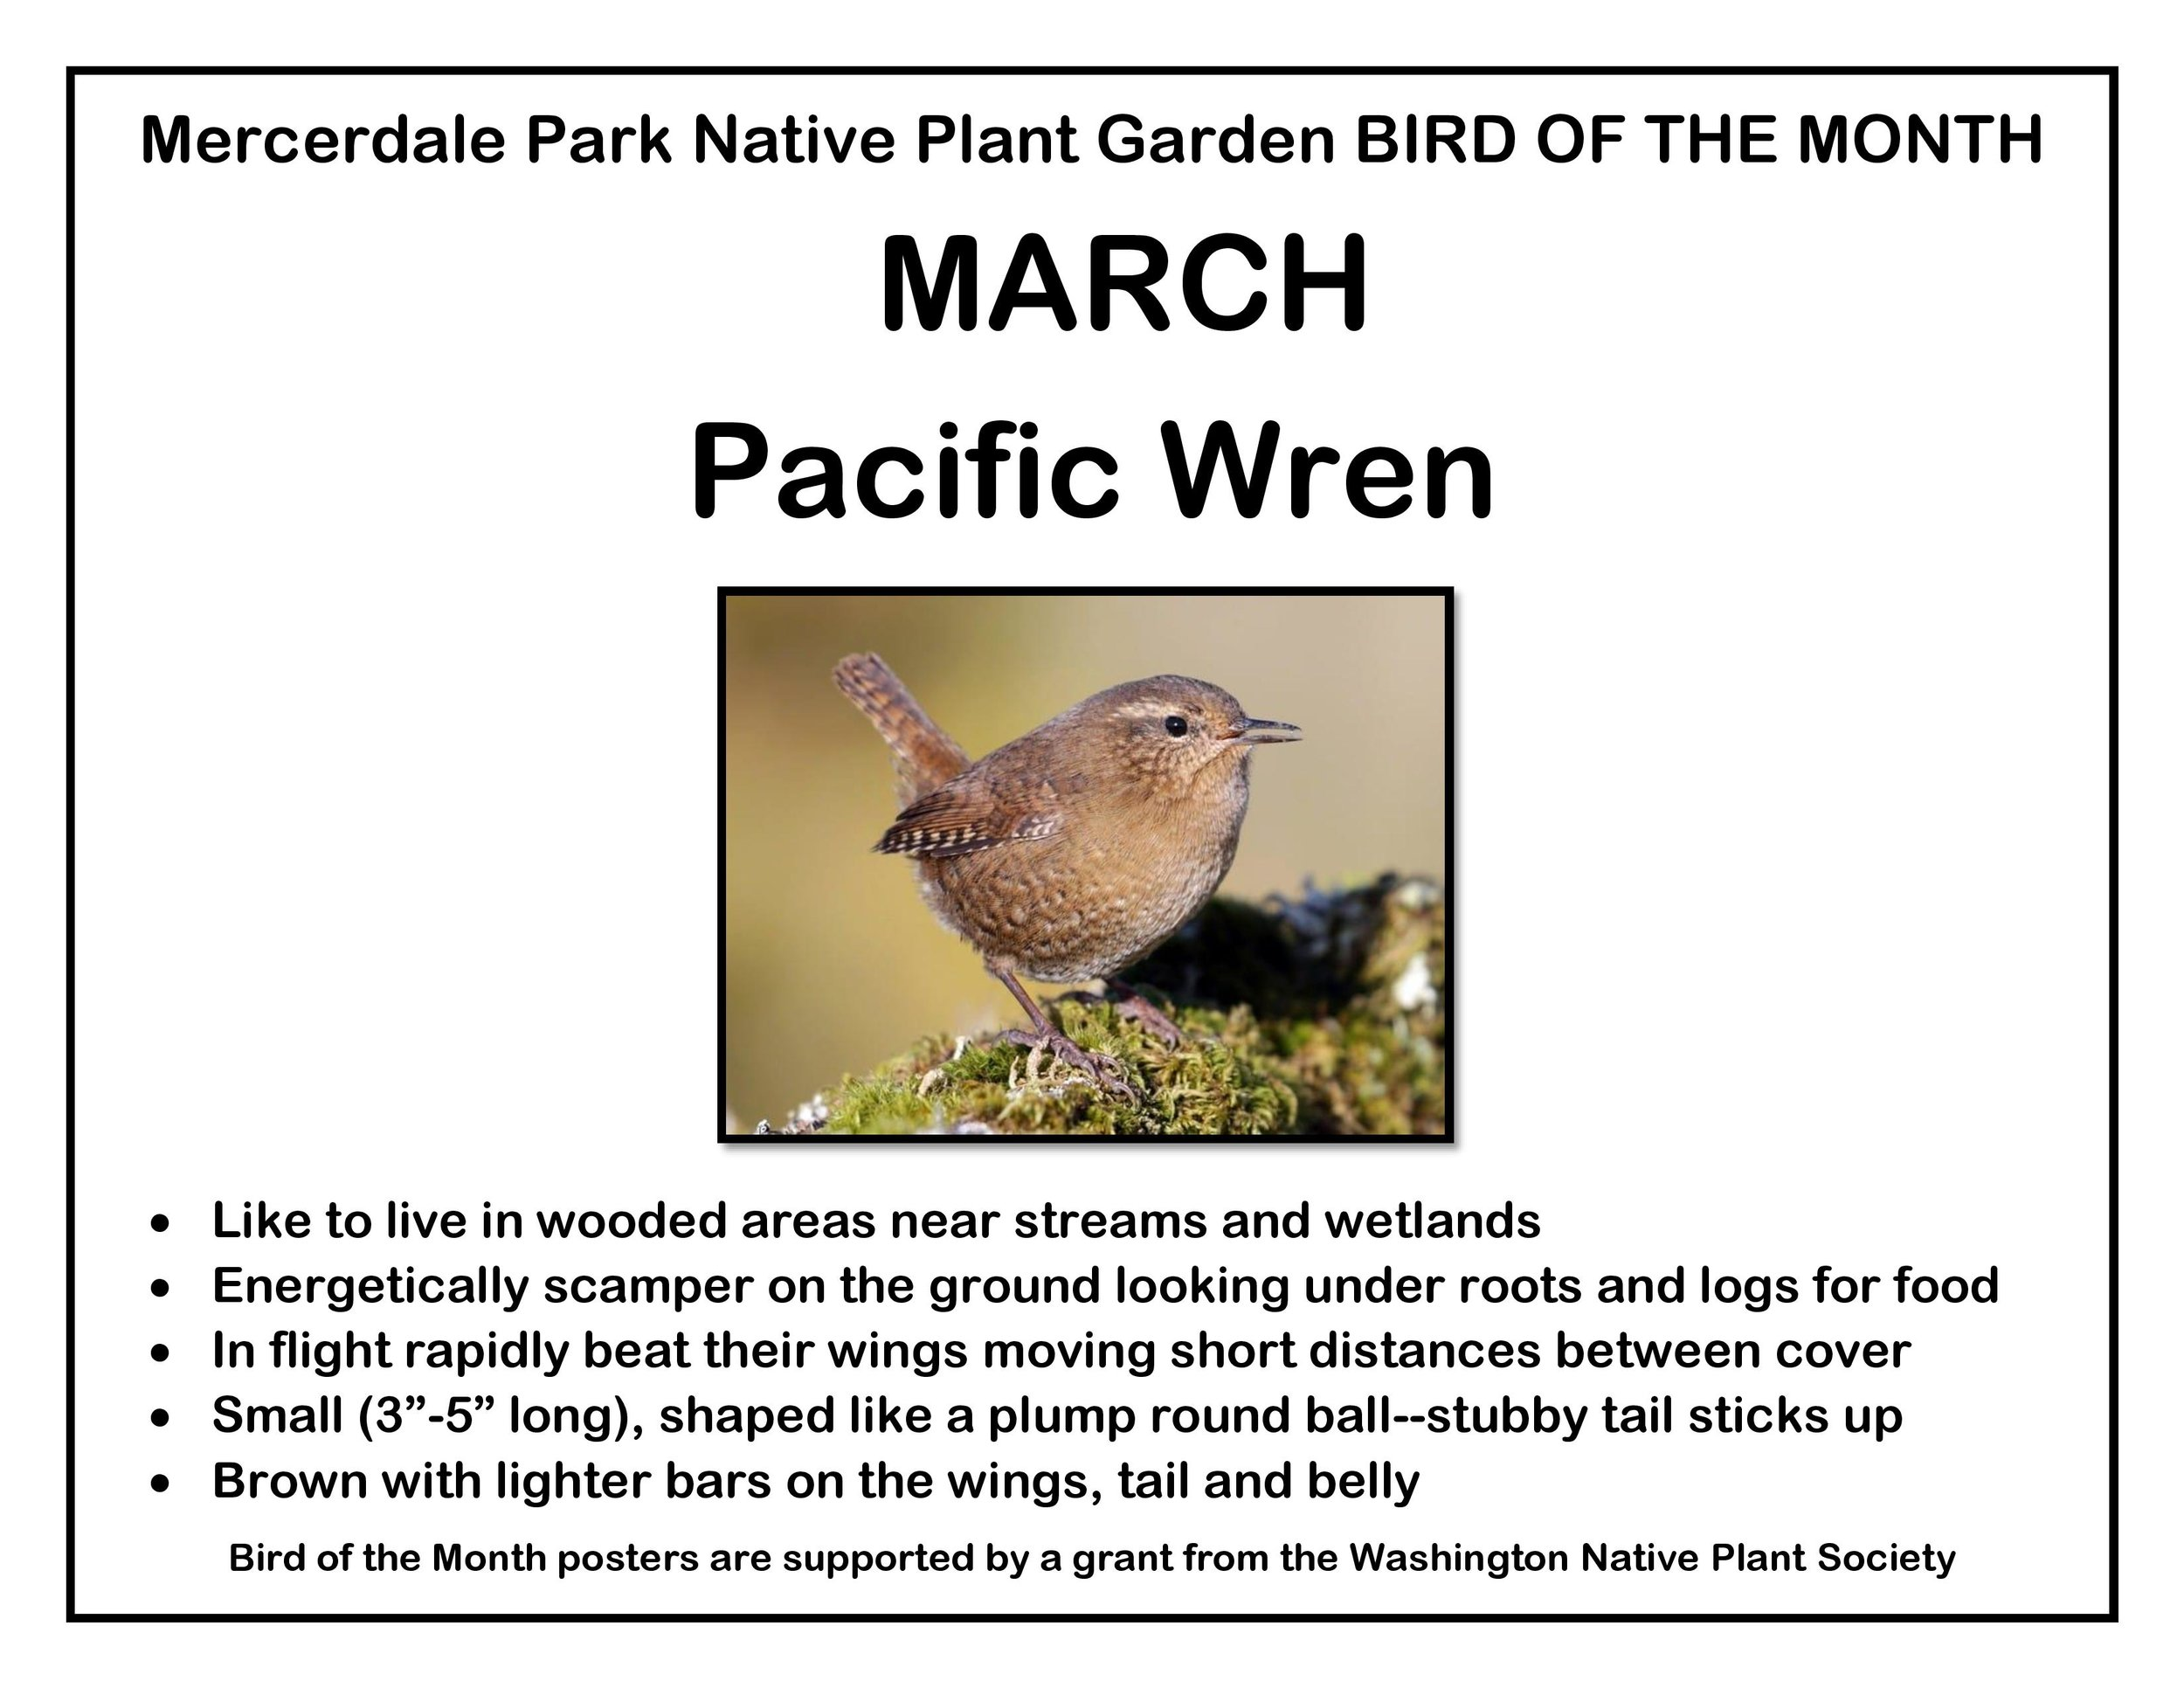 p BIRD OF THE MONTH 3 March Pacific Wren v3-page-001.jpg